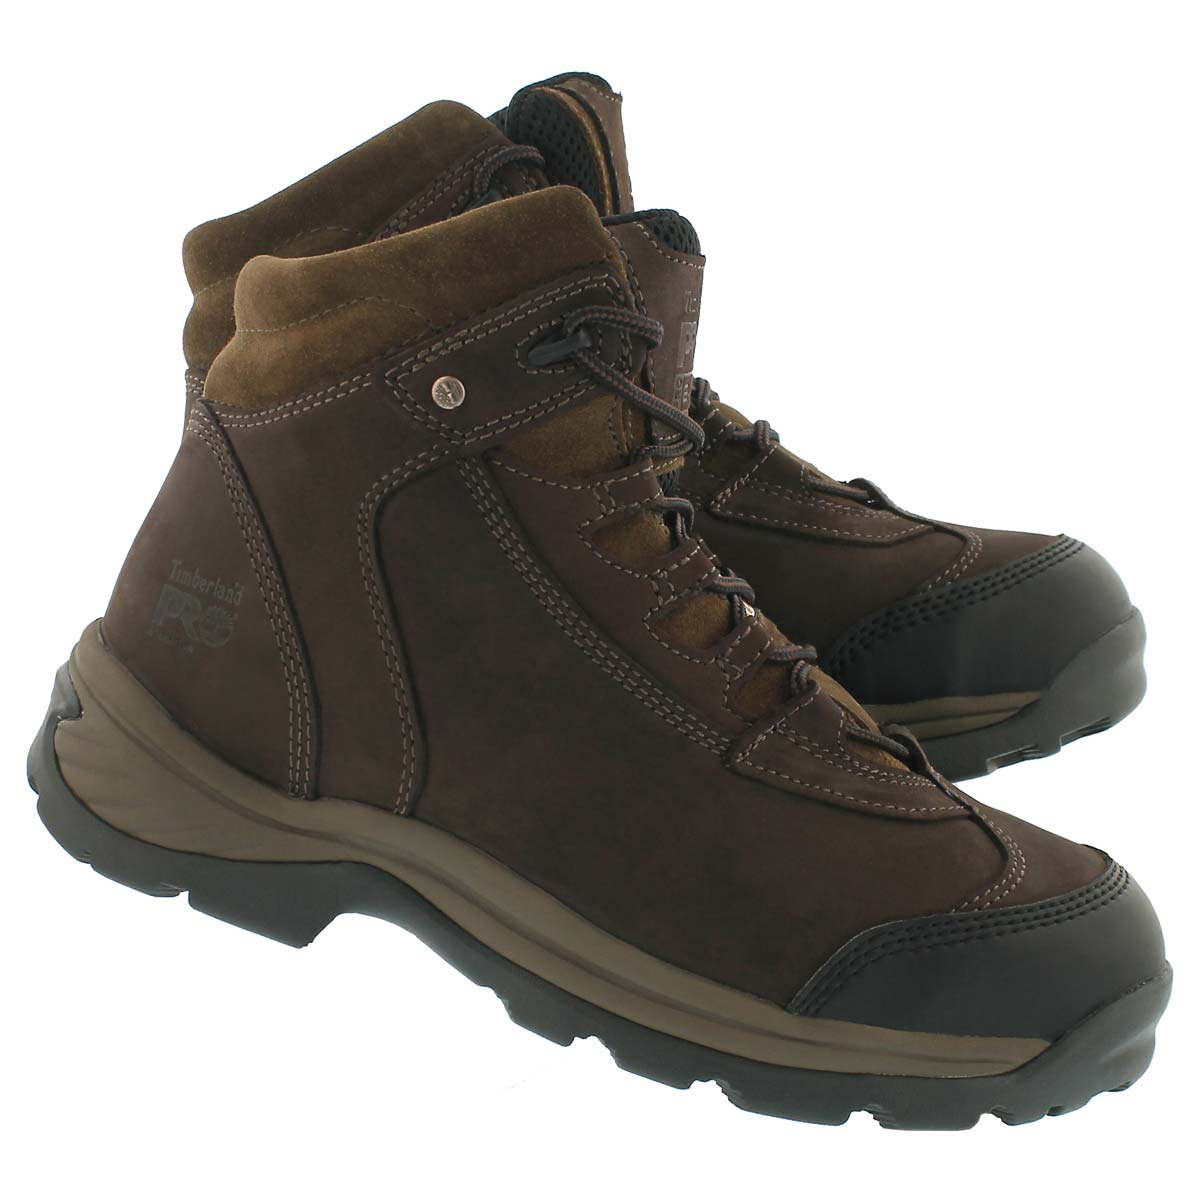 Mns Ratchet chocolate CSA boot